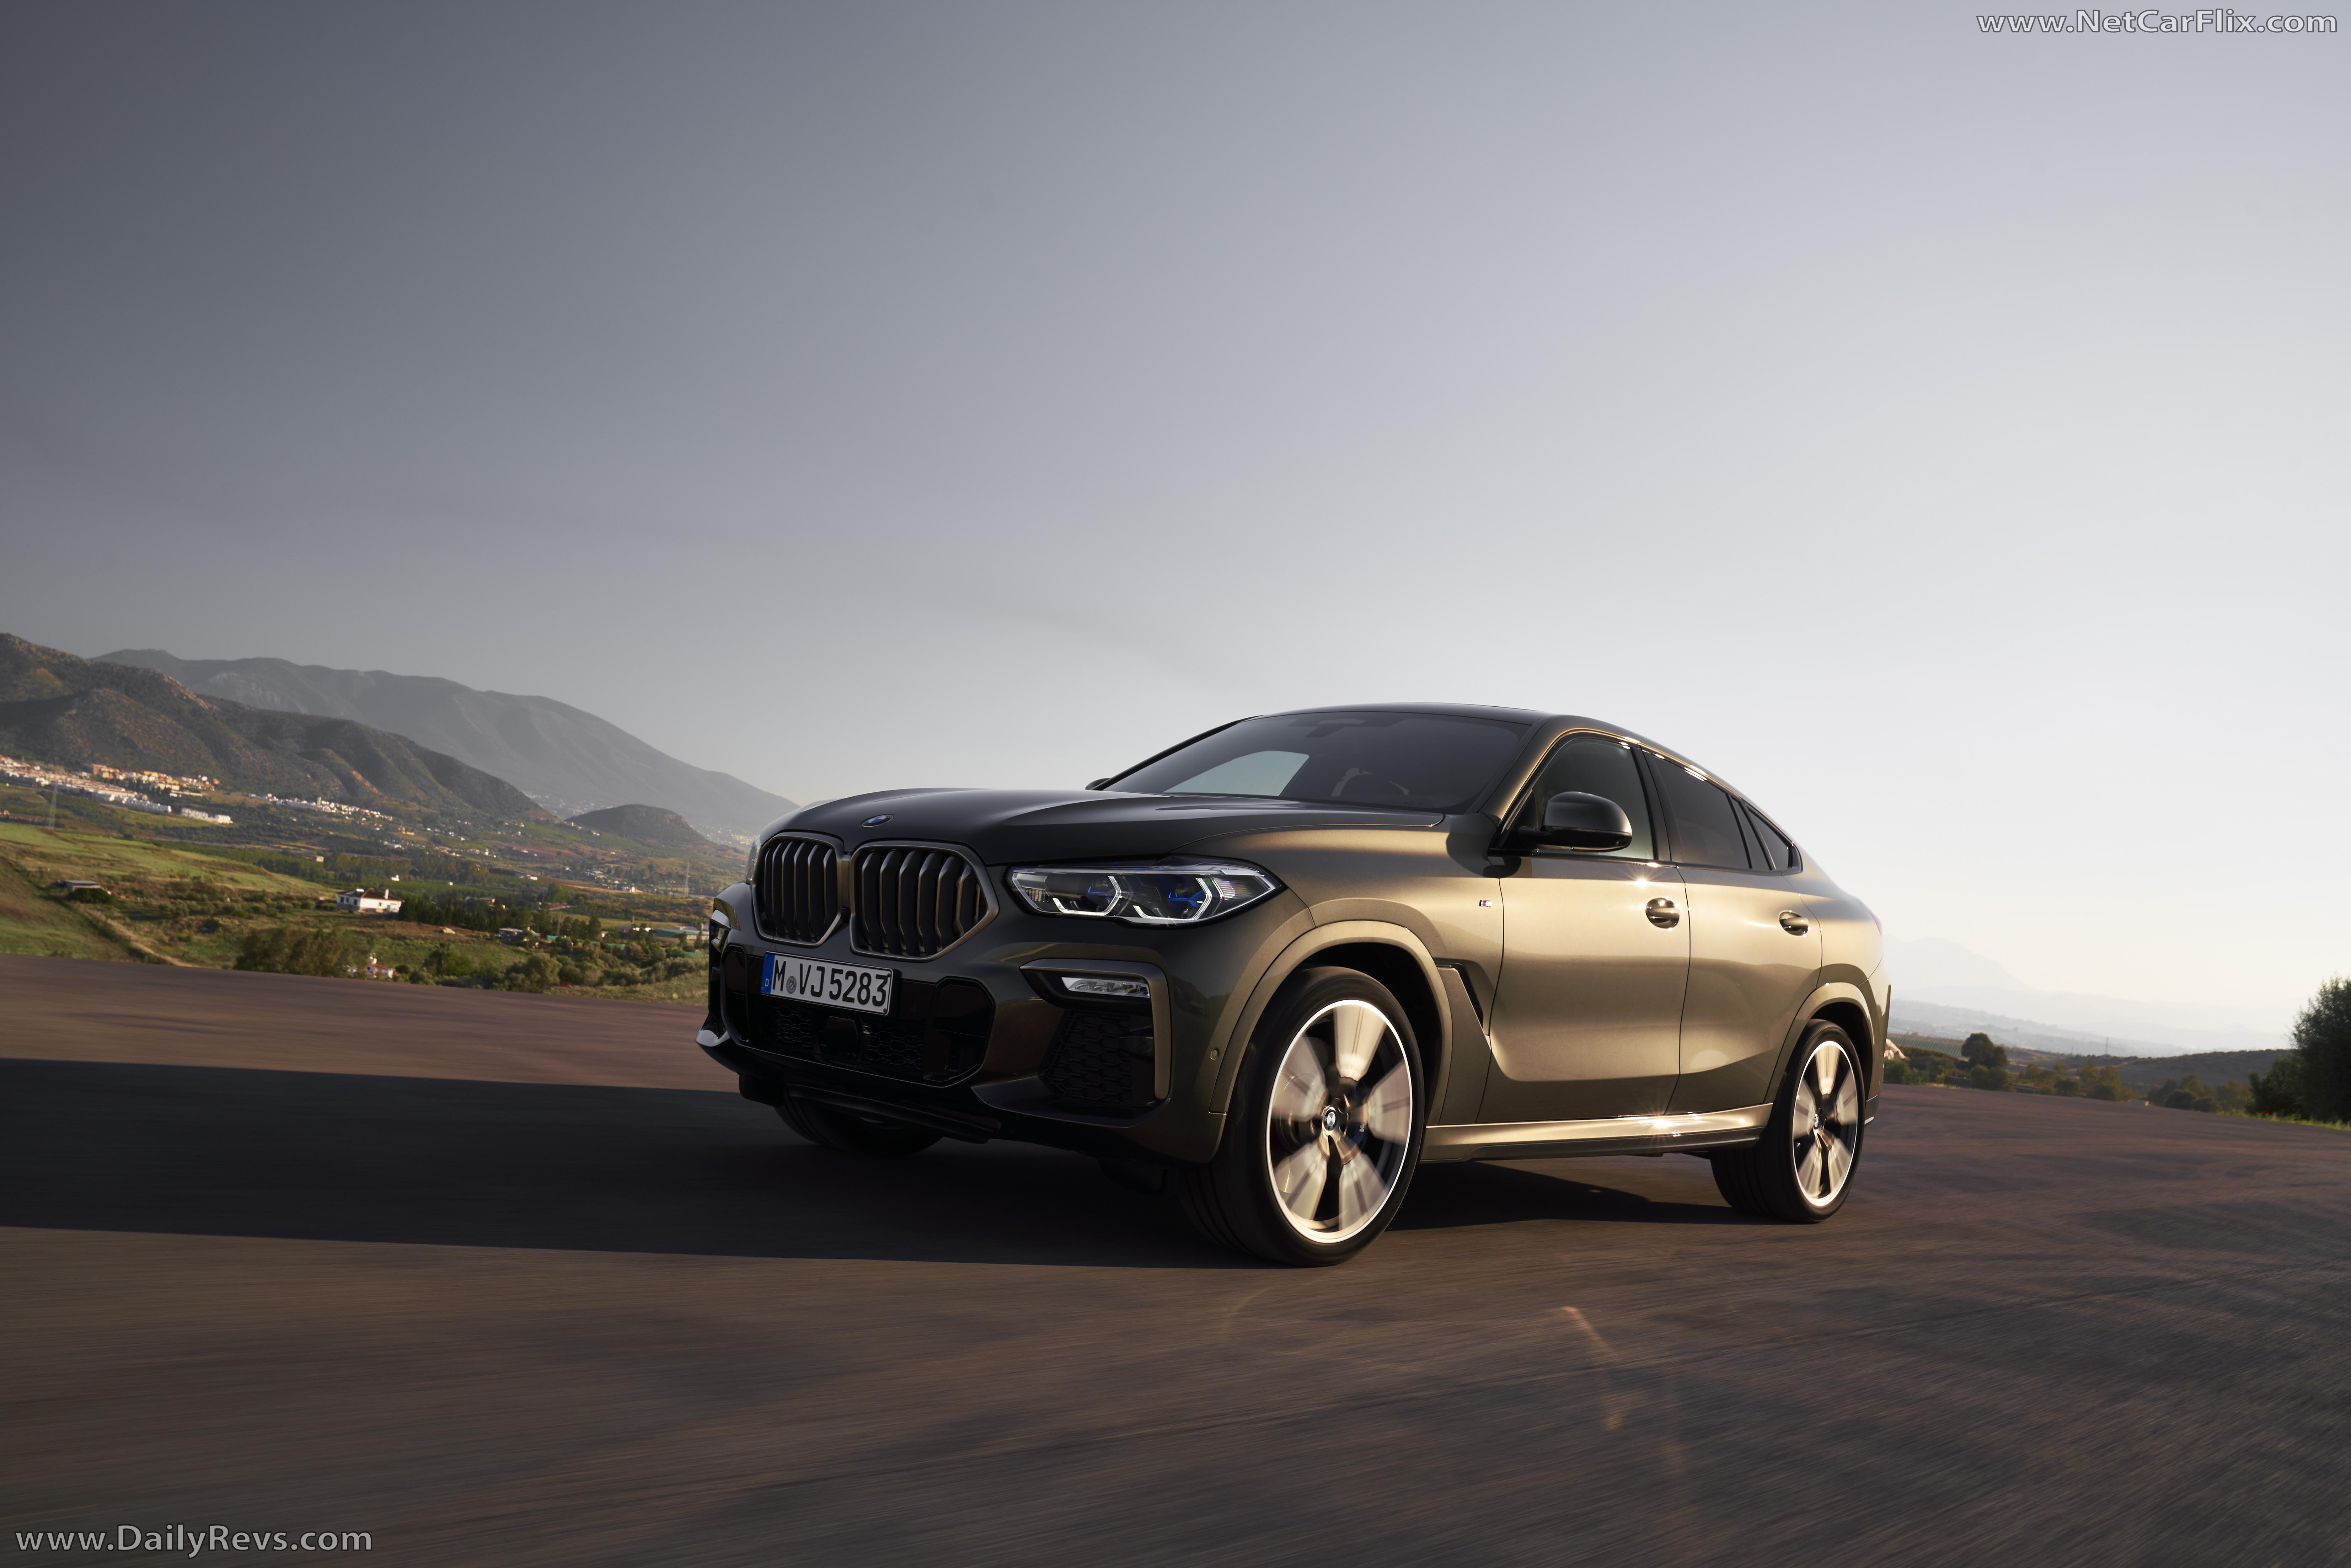 2020 BMW X6 M50i - HD Pictures, Specs, Informations ...